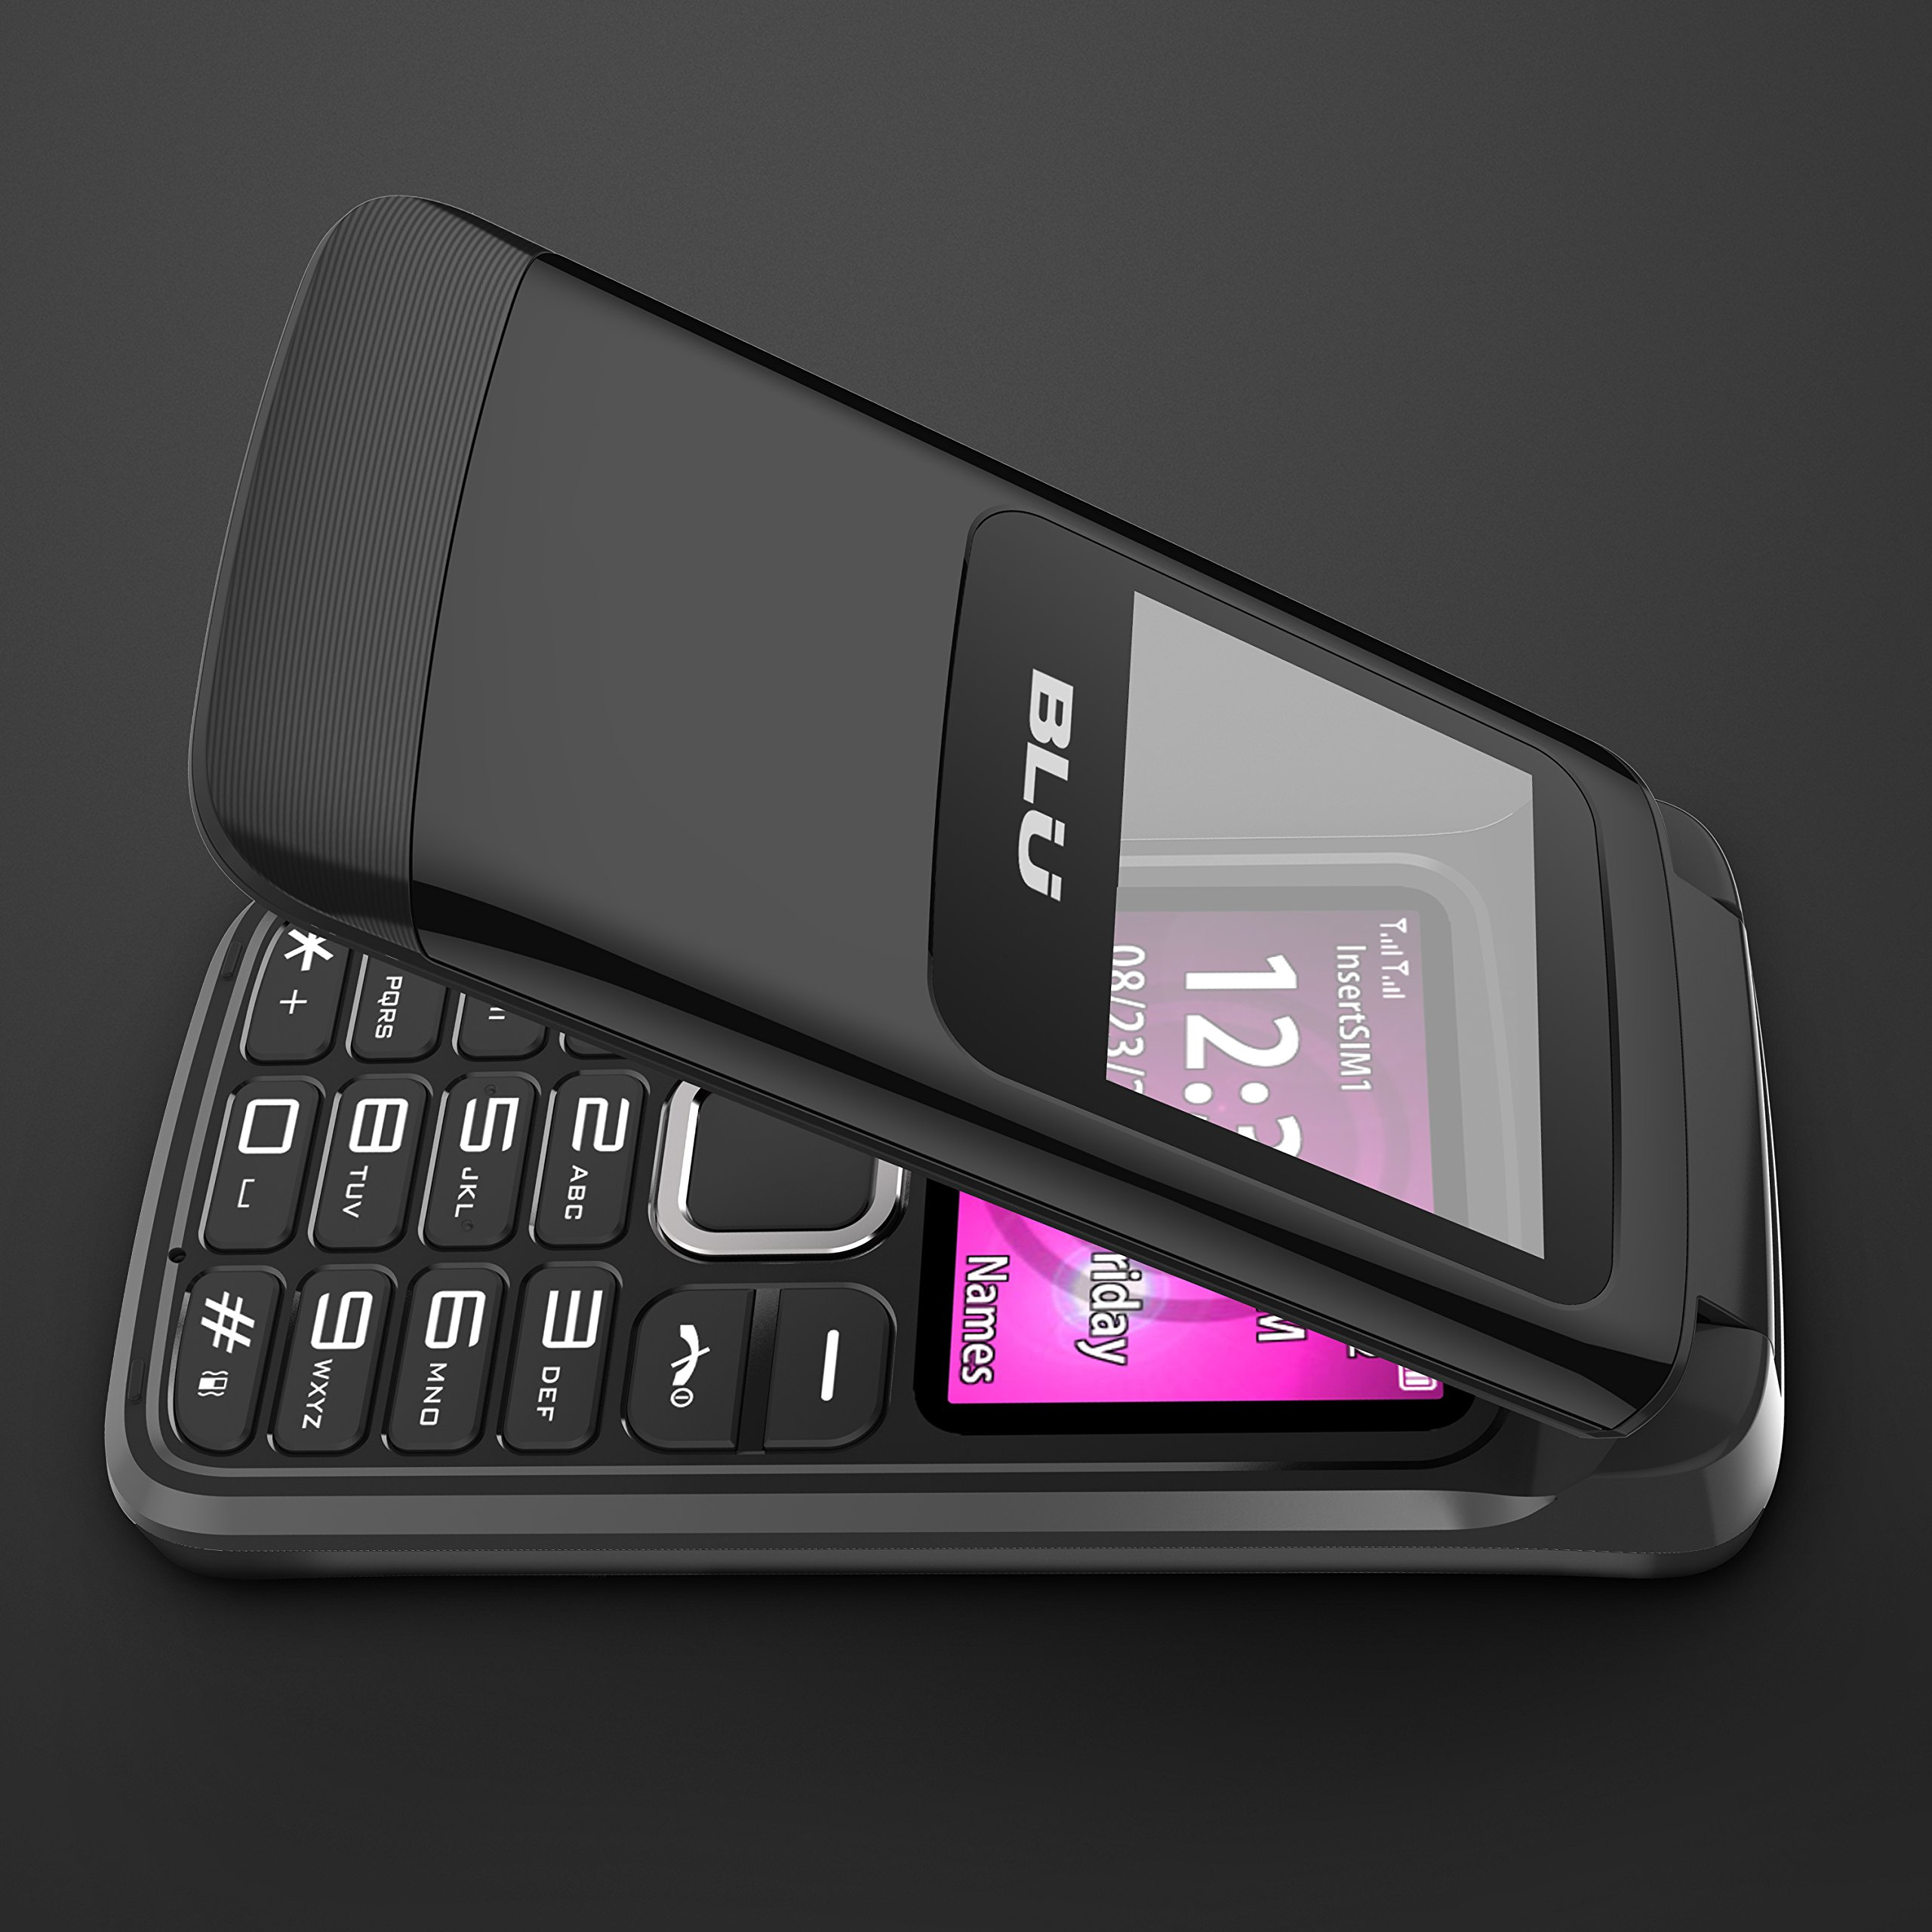 f2904ff418b869 BLU Zoey Flex 3G -Unlocked Dual Sim Flip phone with 3G - Black